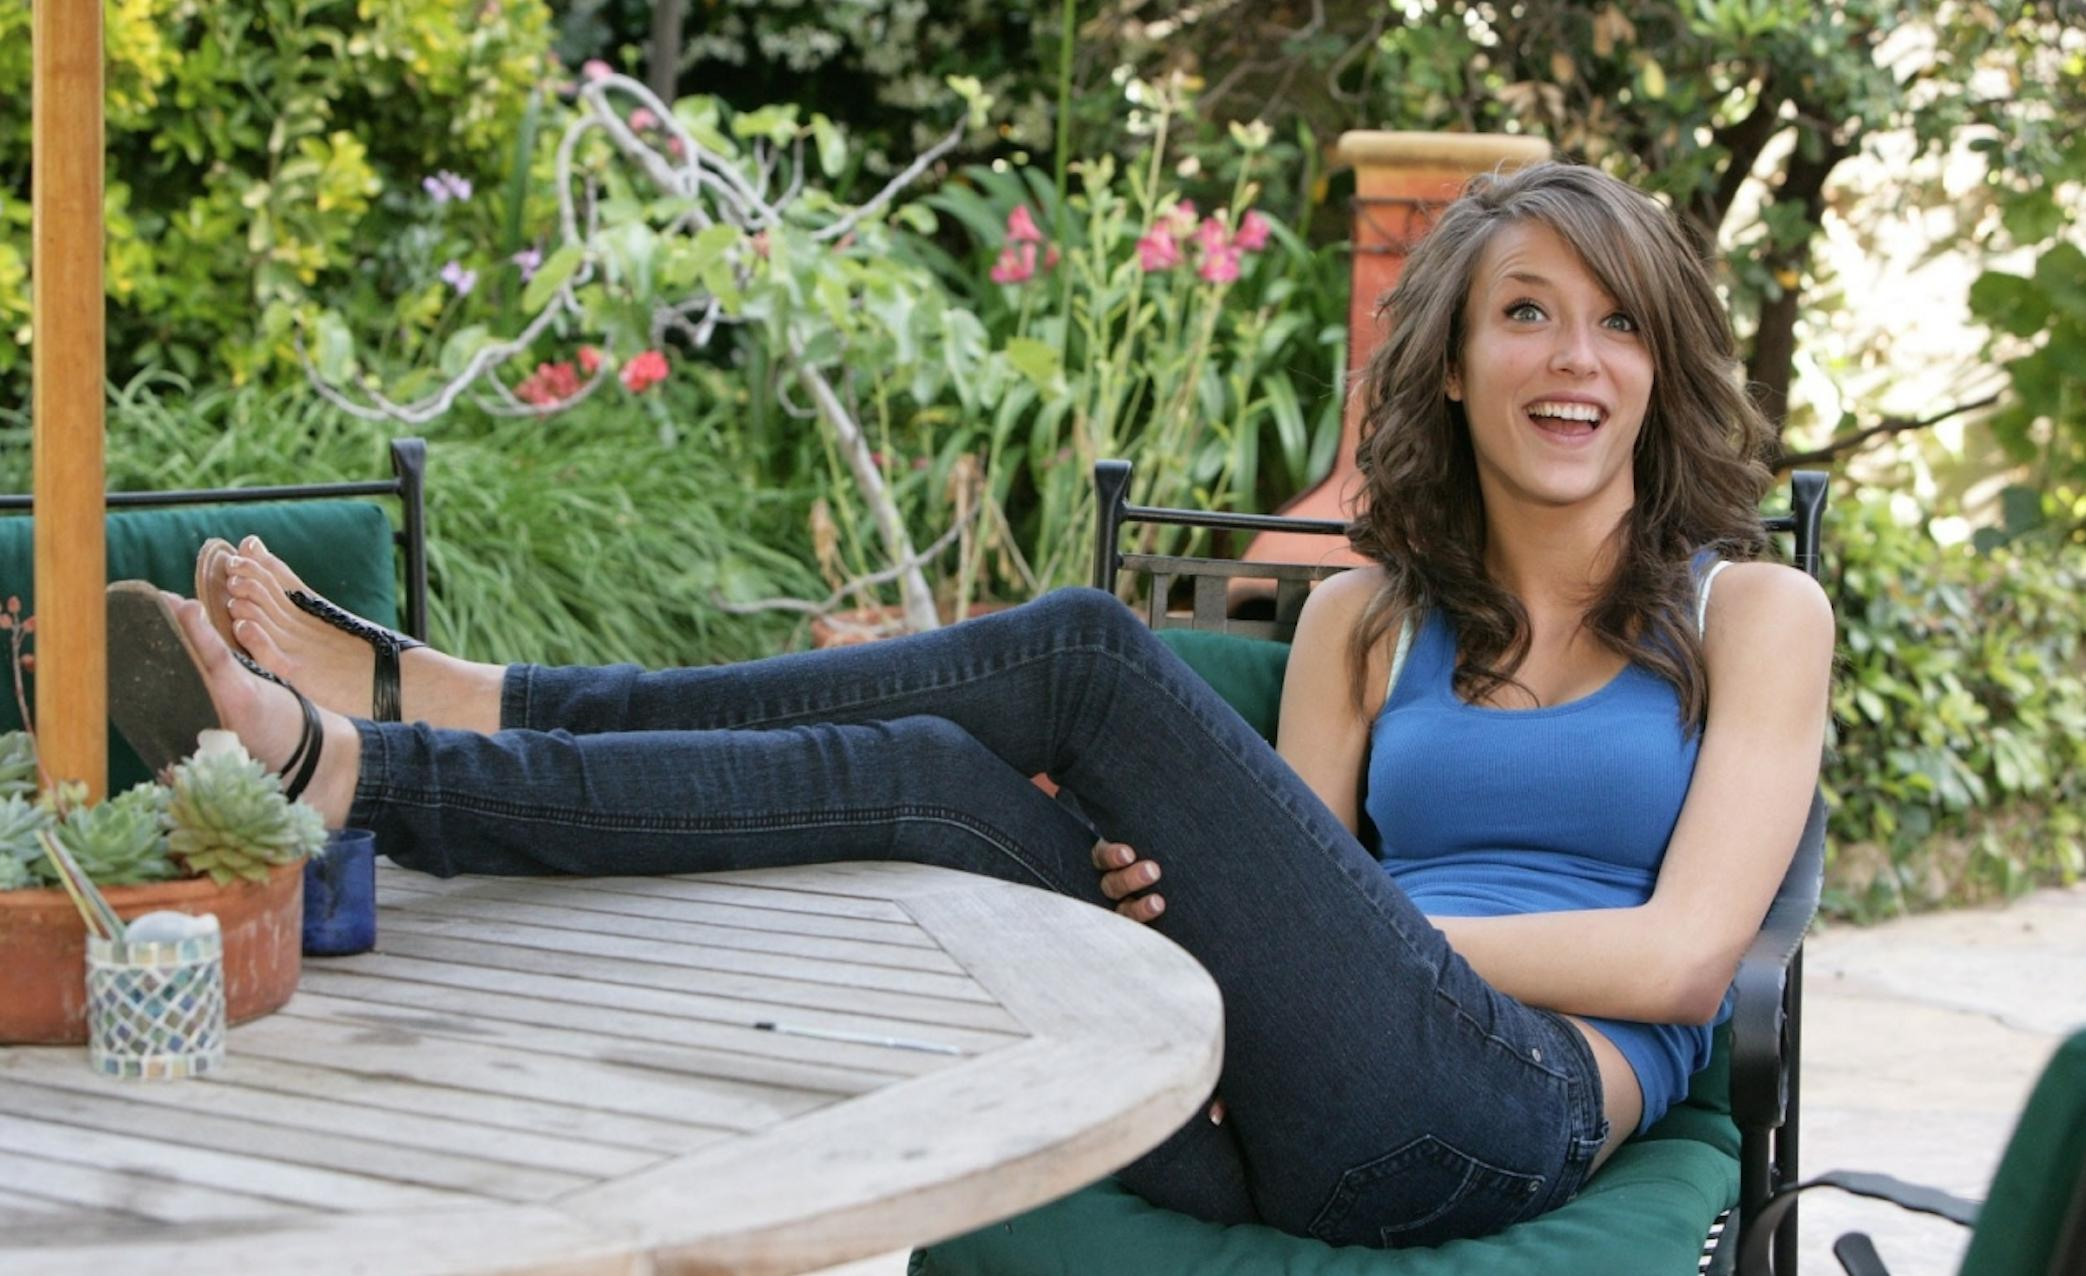 Cute Wallpapers For Teen Girls Malena Morgan Images Full Hd Pictures